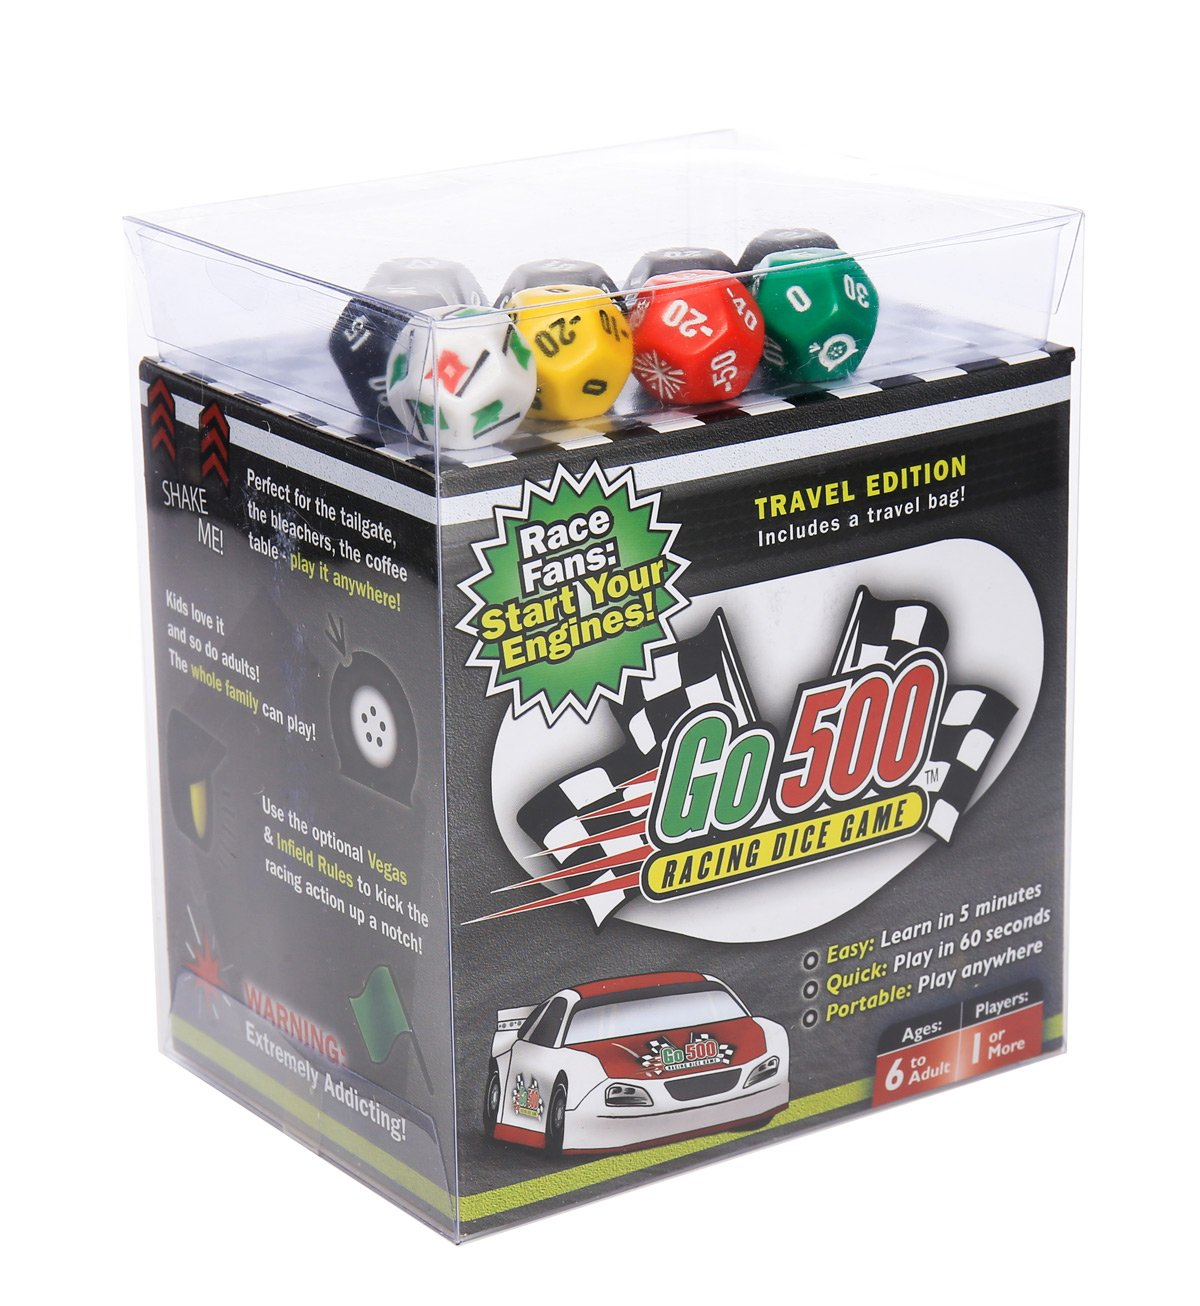 Zobmondo!! Go500 Car Racing Dice Game | Great for NASCAR Fans, Families, and Kids | Portable Fun Game for Home, Travel, Camping, Bleachers, Vacation, Beach